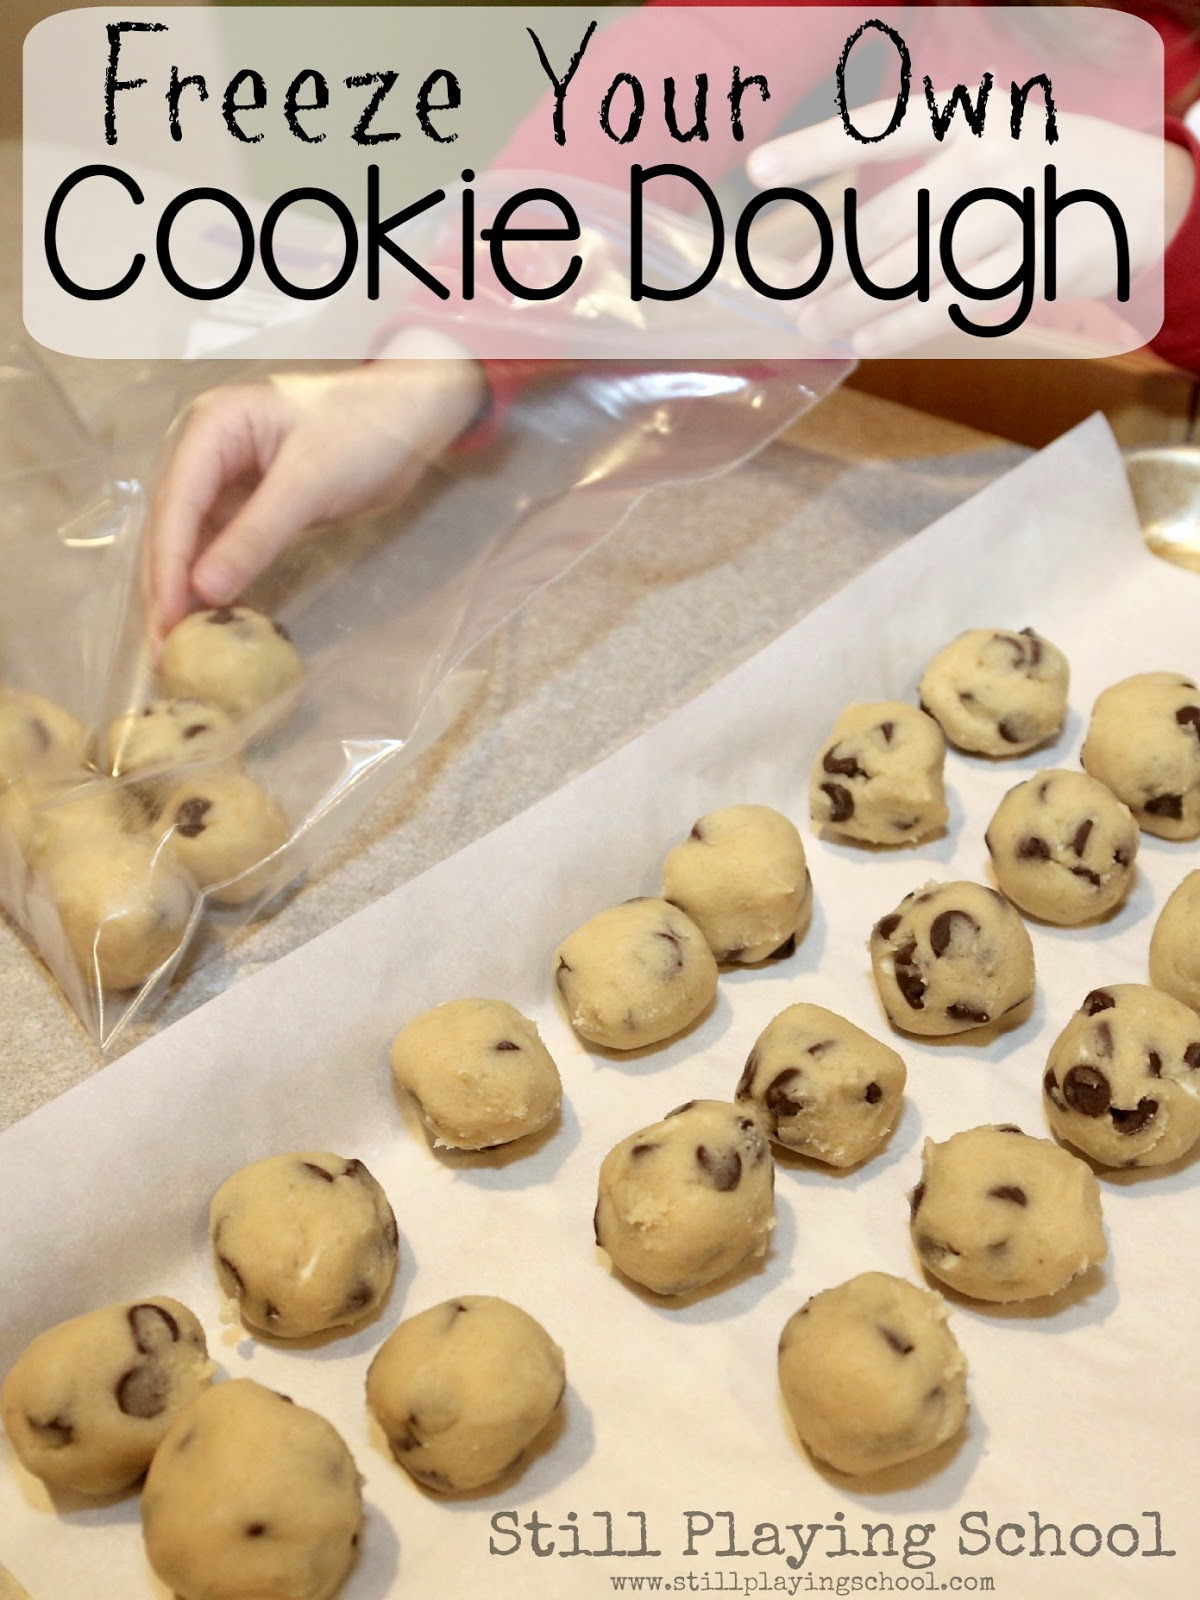 How to Freeze Your Own Cookie Dough | Still Playing School